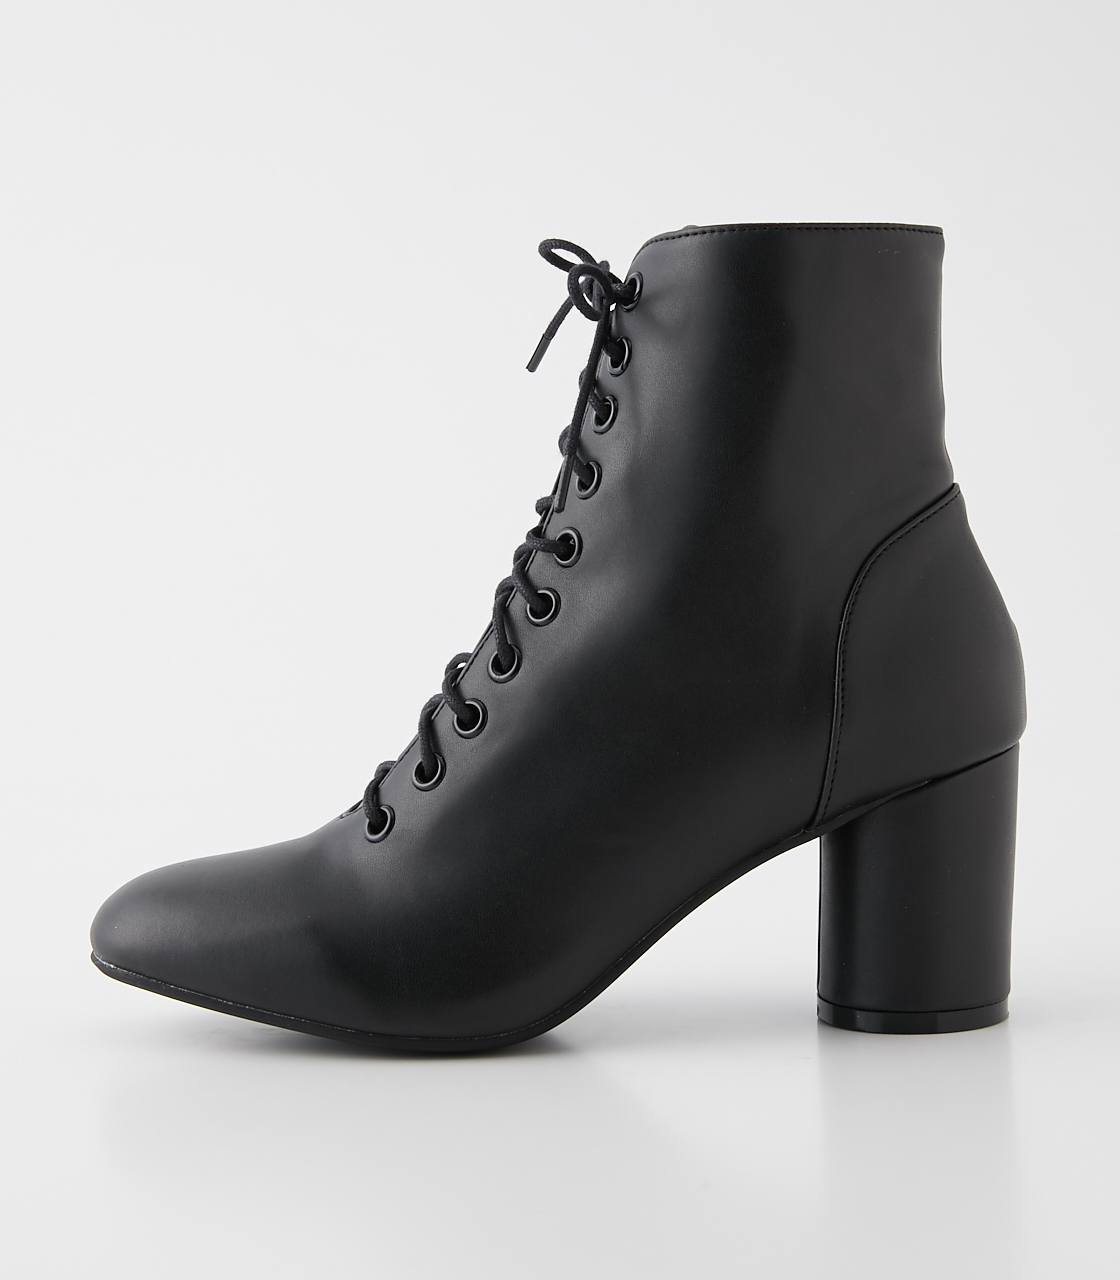 LACE UP HEEL BOOTS/レースアップヒールブーツ 詳細画像 BLK 2